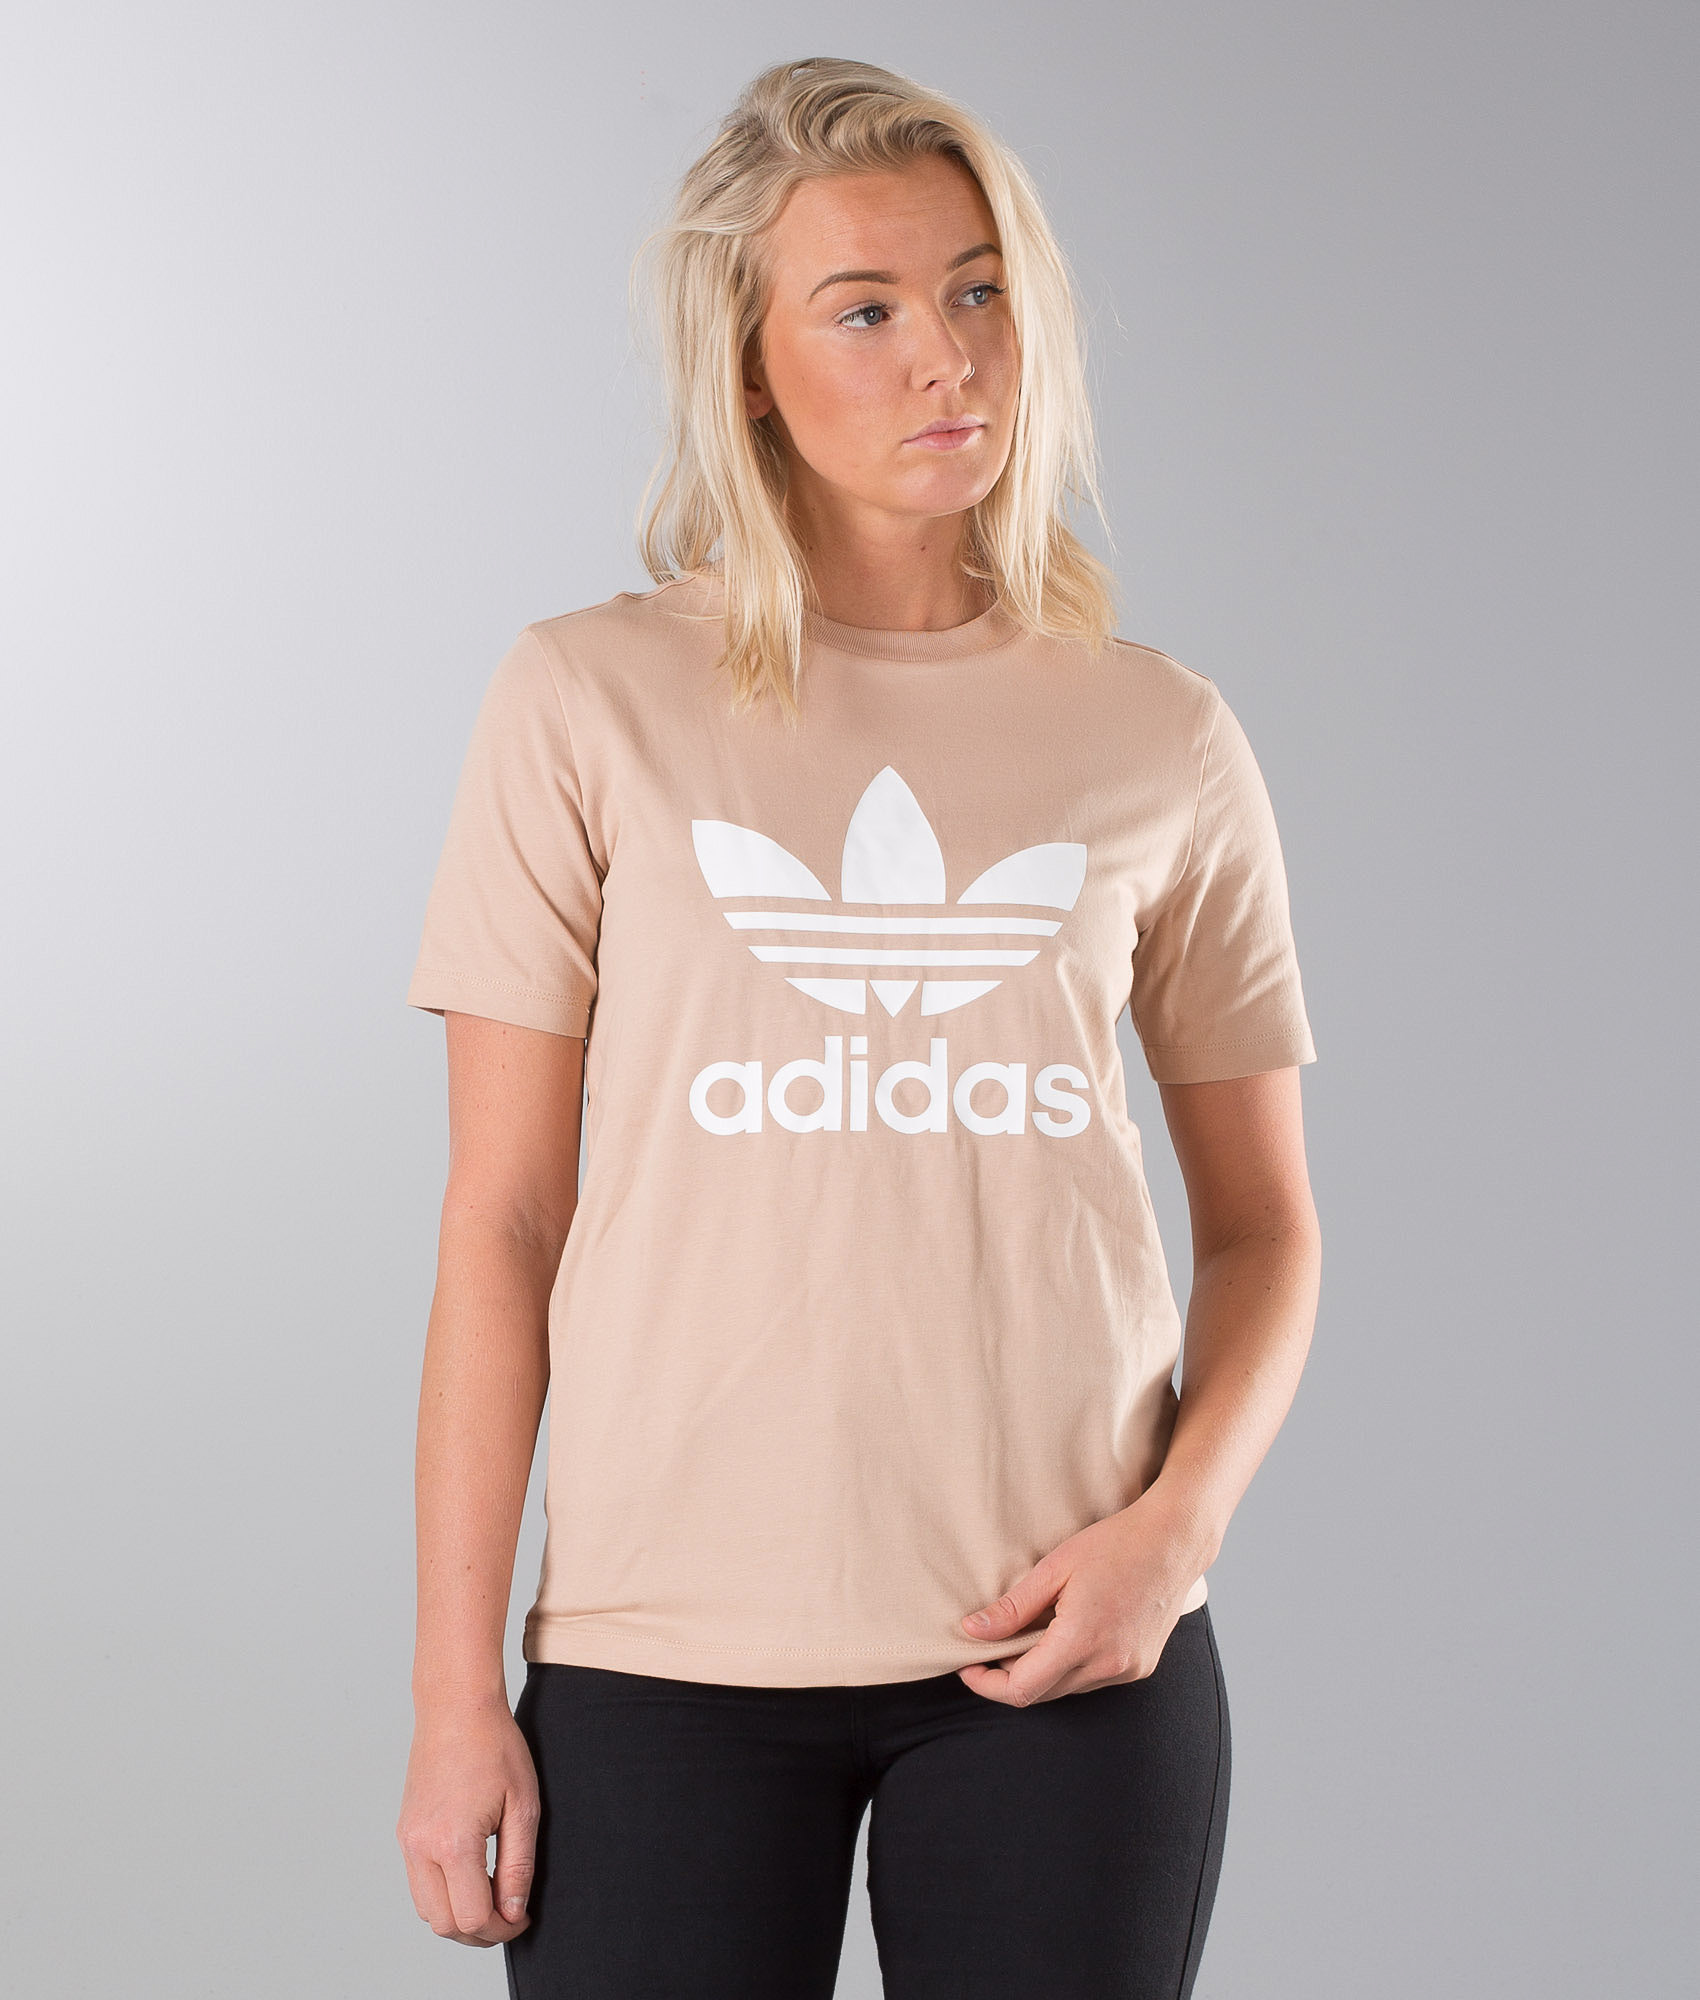 best wholesaler 5251d 8bf6c Adidas Originals Trefoil T-shirt